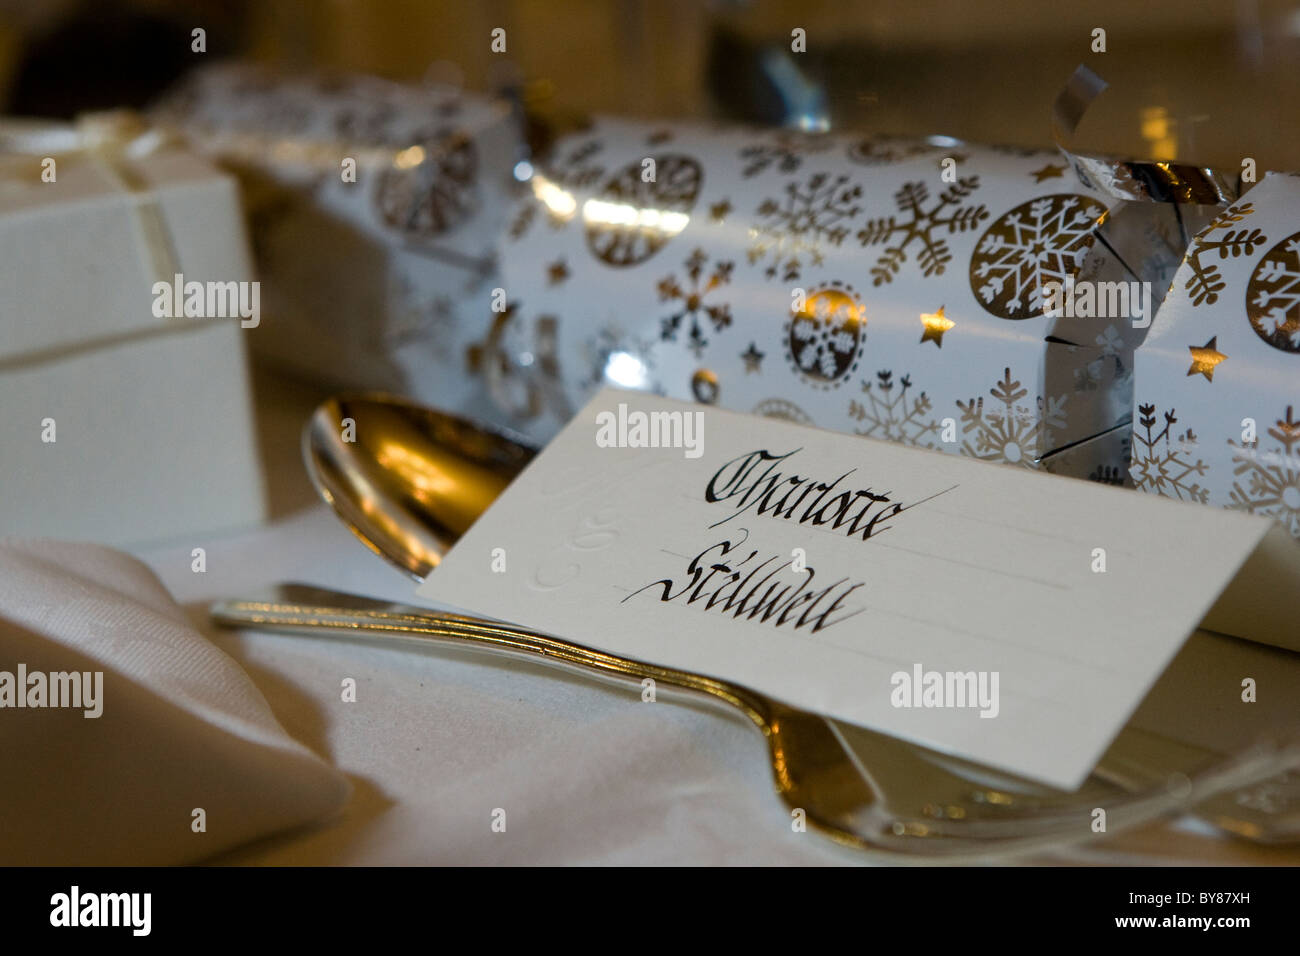 Calligraphie, cracker et couverts Photo Stock